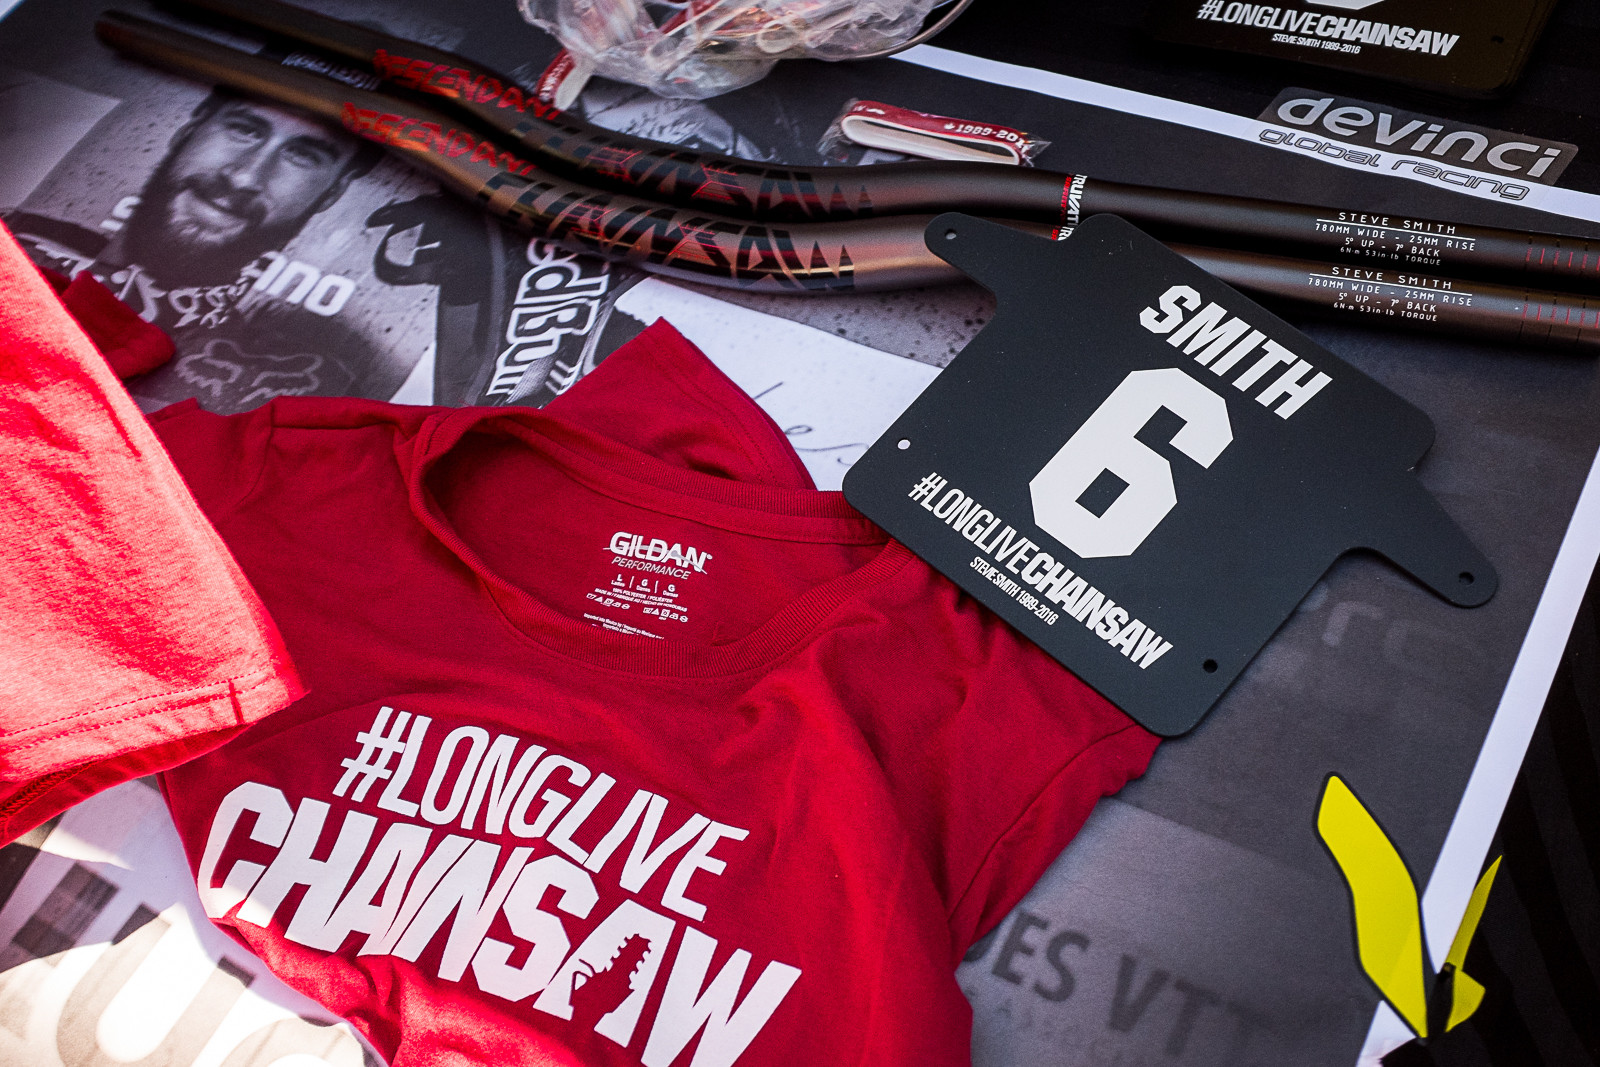 Stevie Smith Memorial Shirts, Number Plates, Handlebars, and Bracelets - PIT BITS - New 2017 Products from Crankworx Whistler - Mountain Biking Pictures - Vital MTB